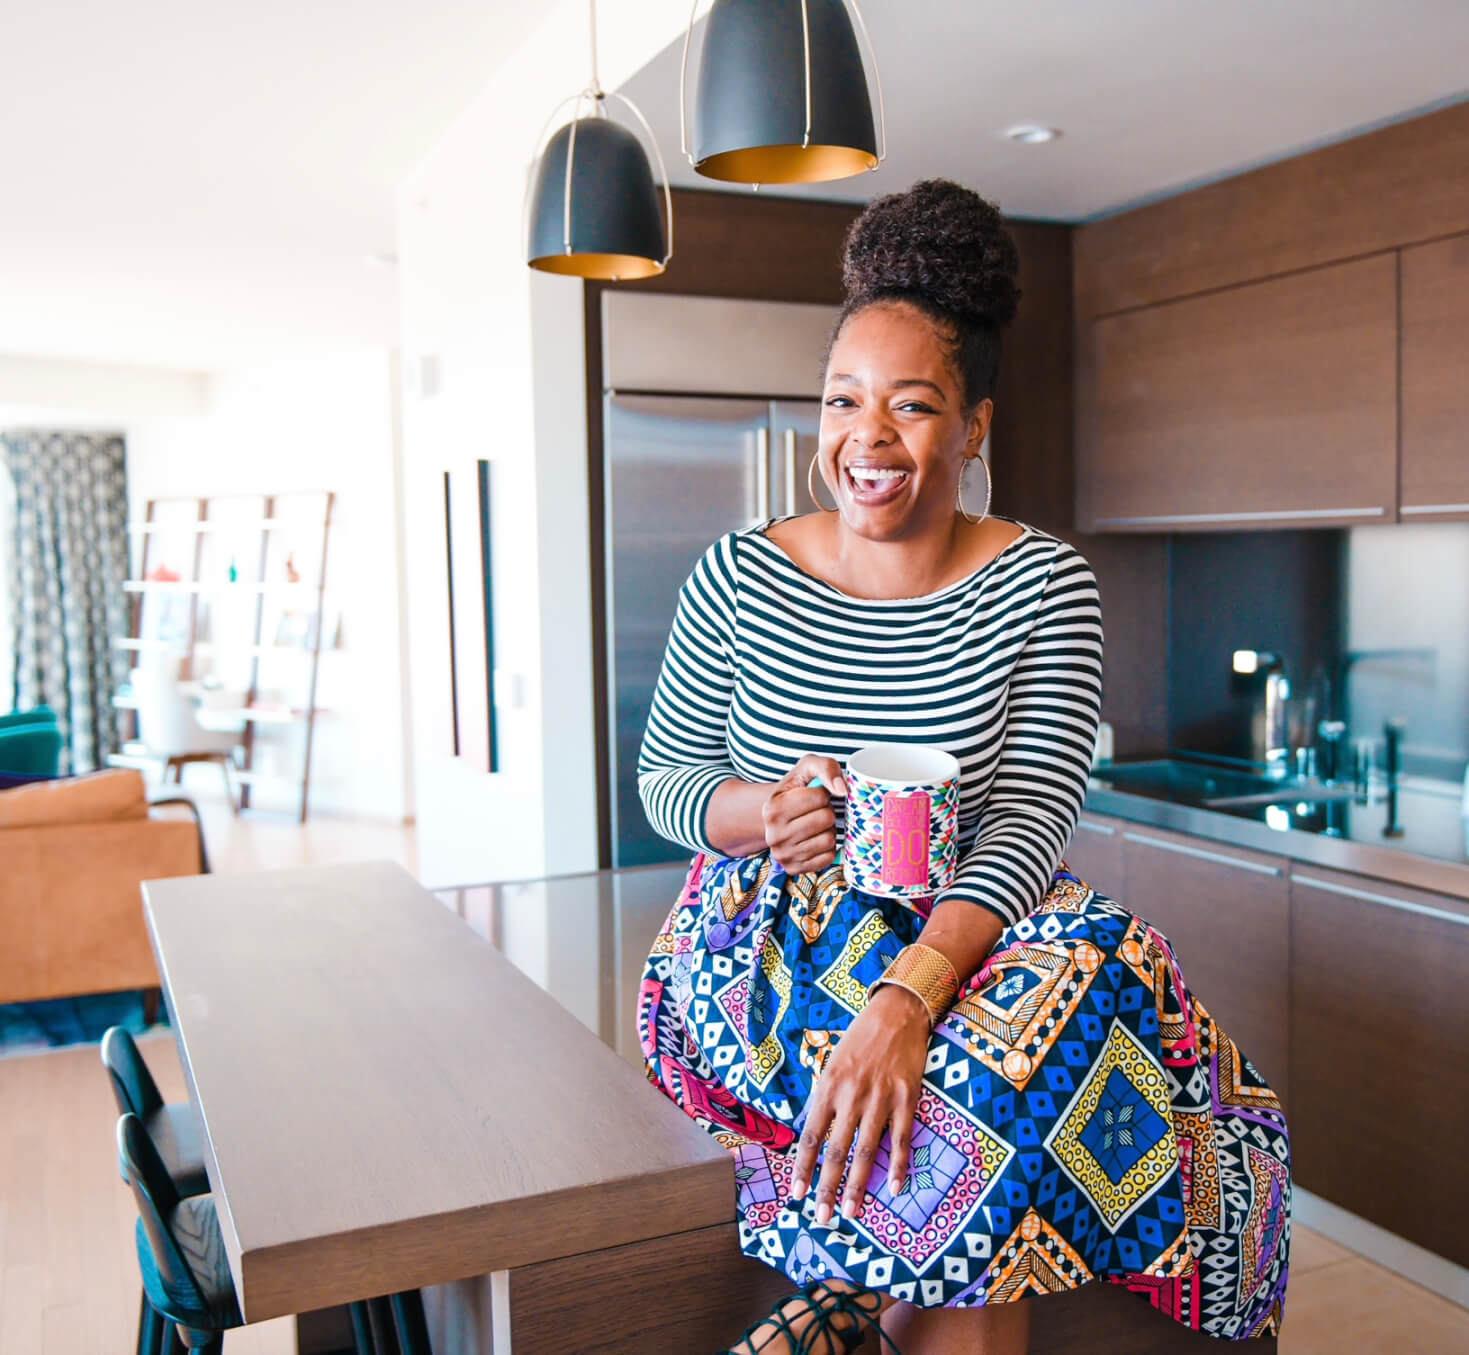 Entrepreneur Apryl Thatch, smiling and colourfully dressed, sitting on a kitchen table